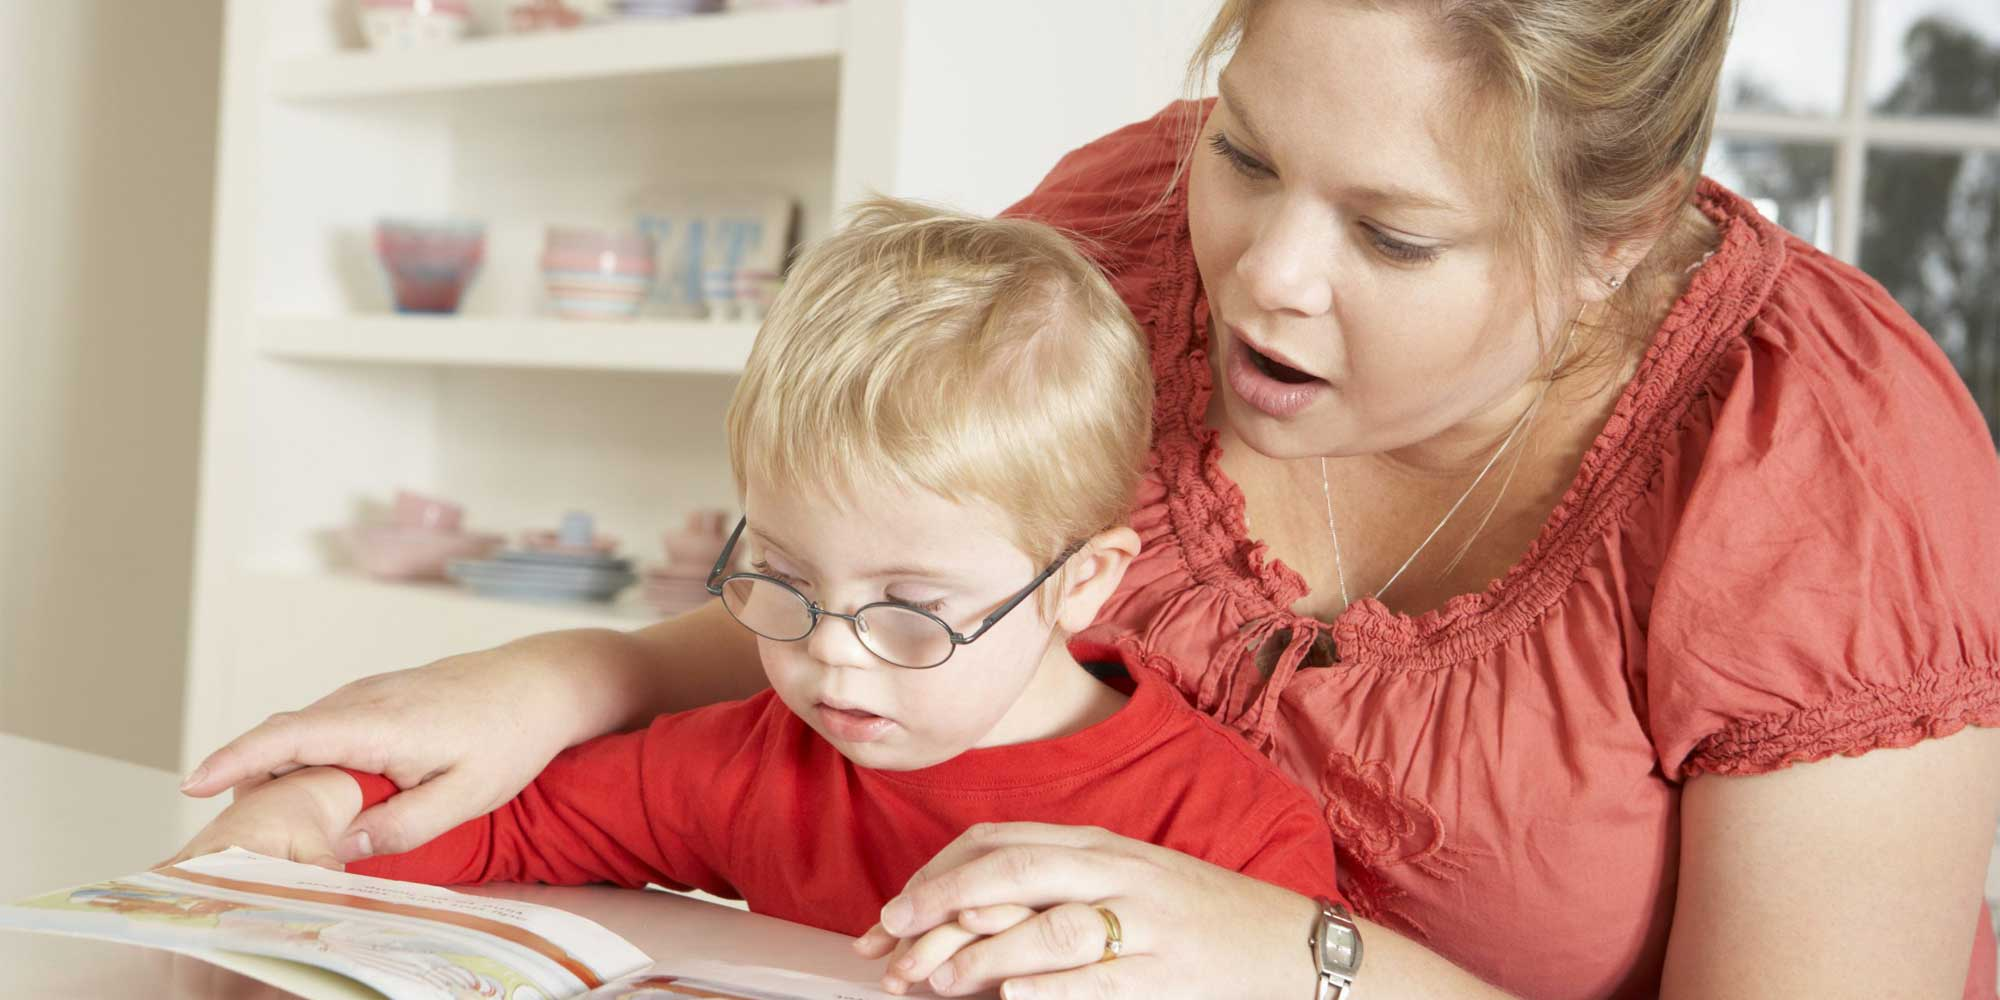 mother teaching child to read from book